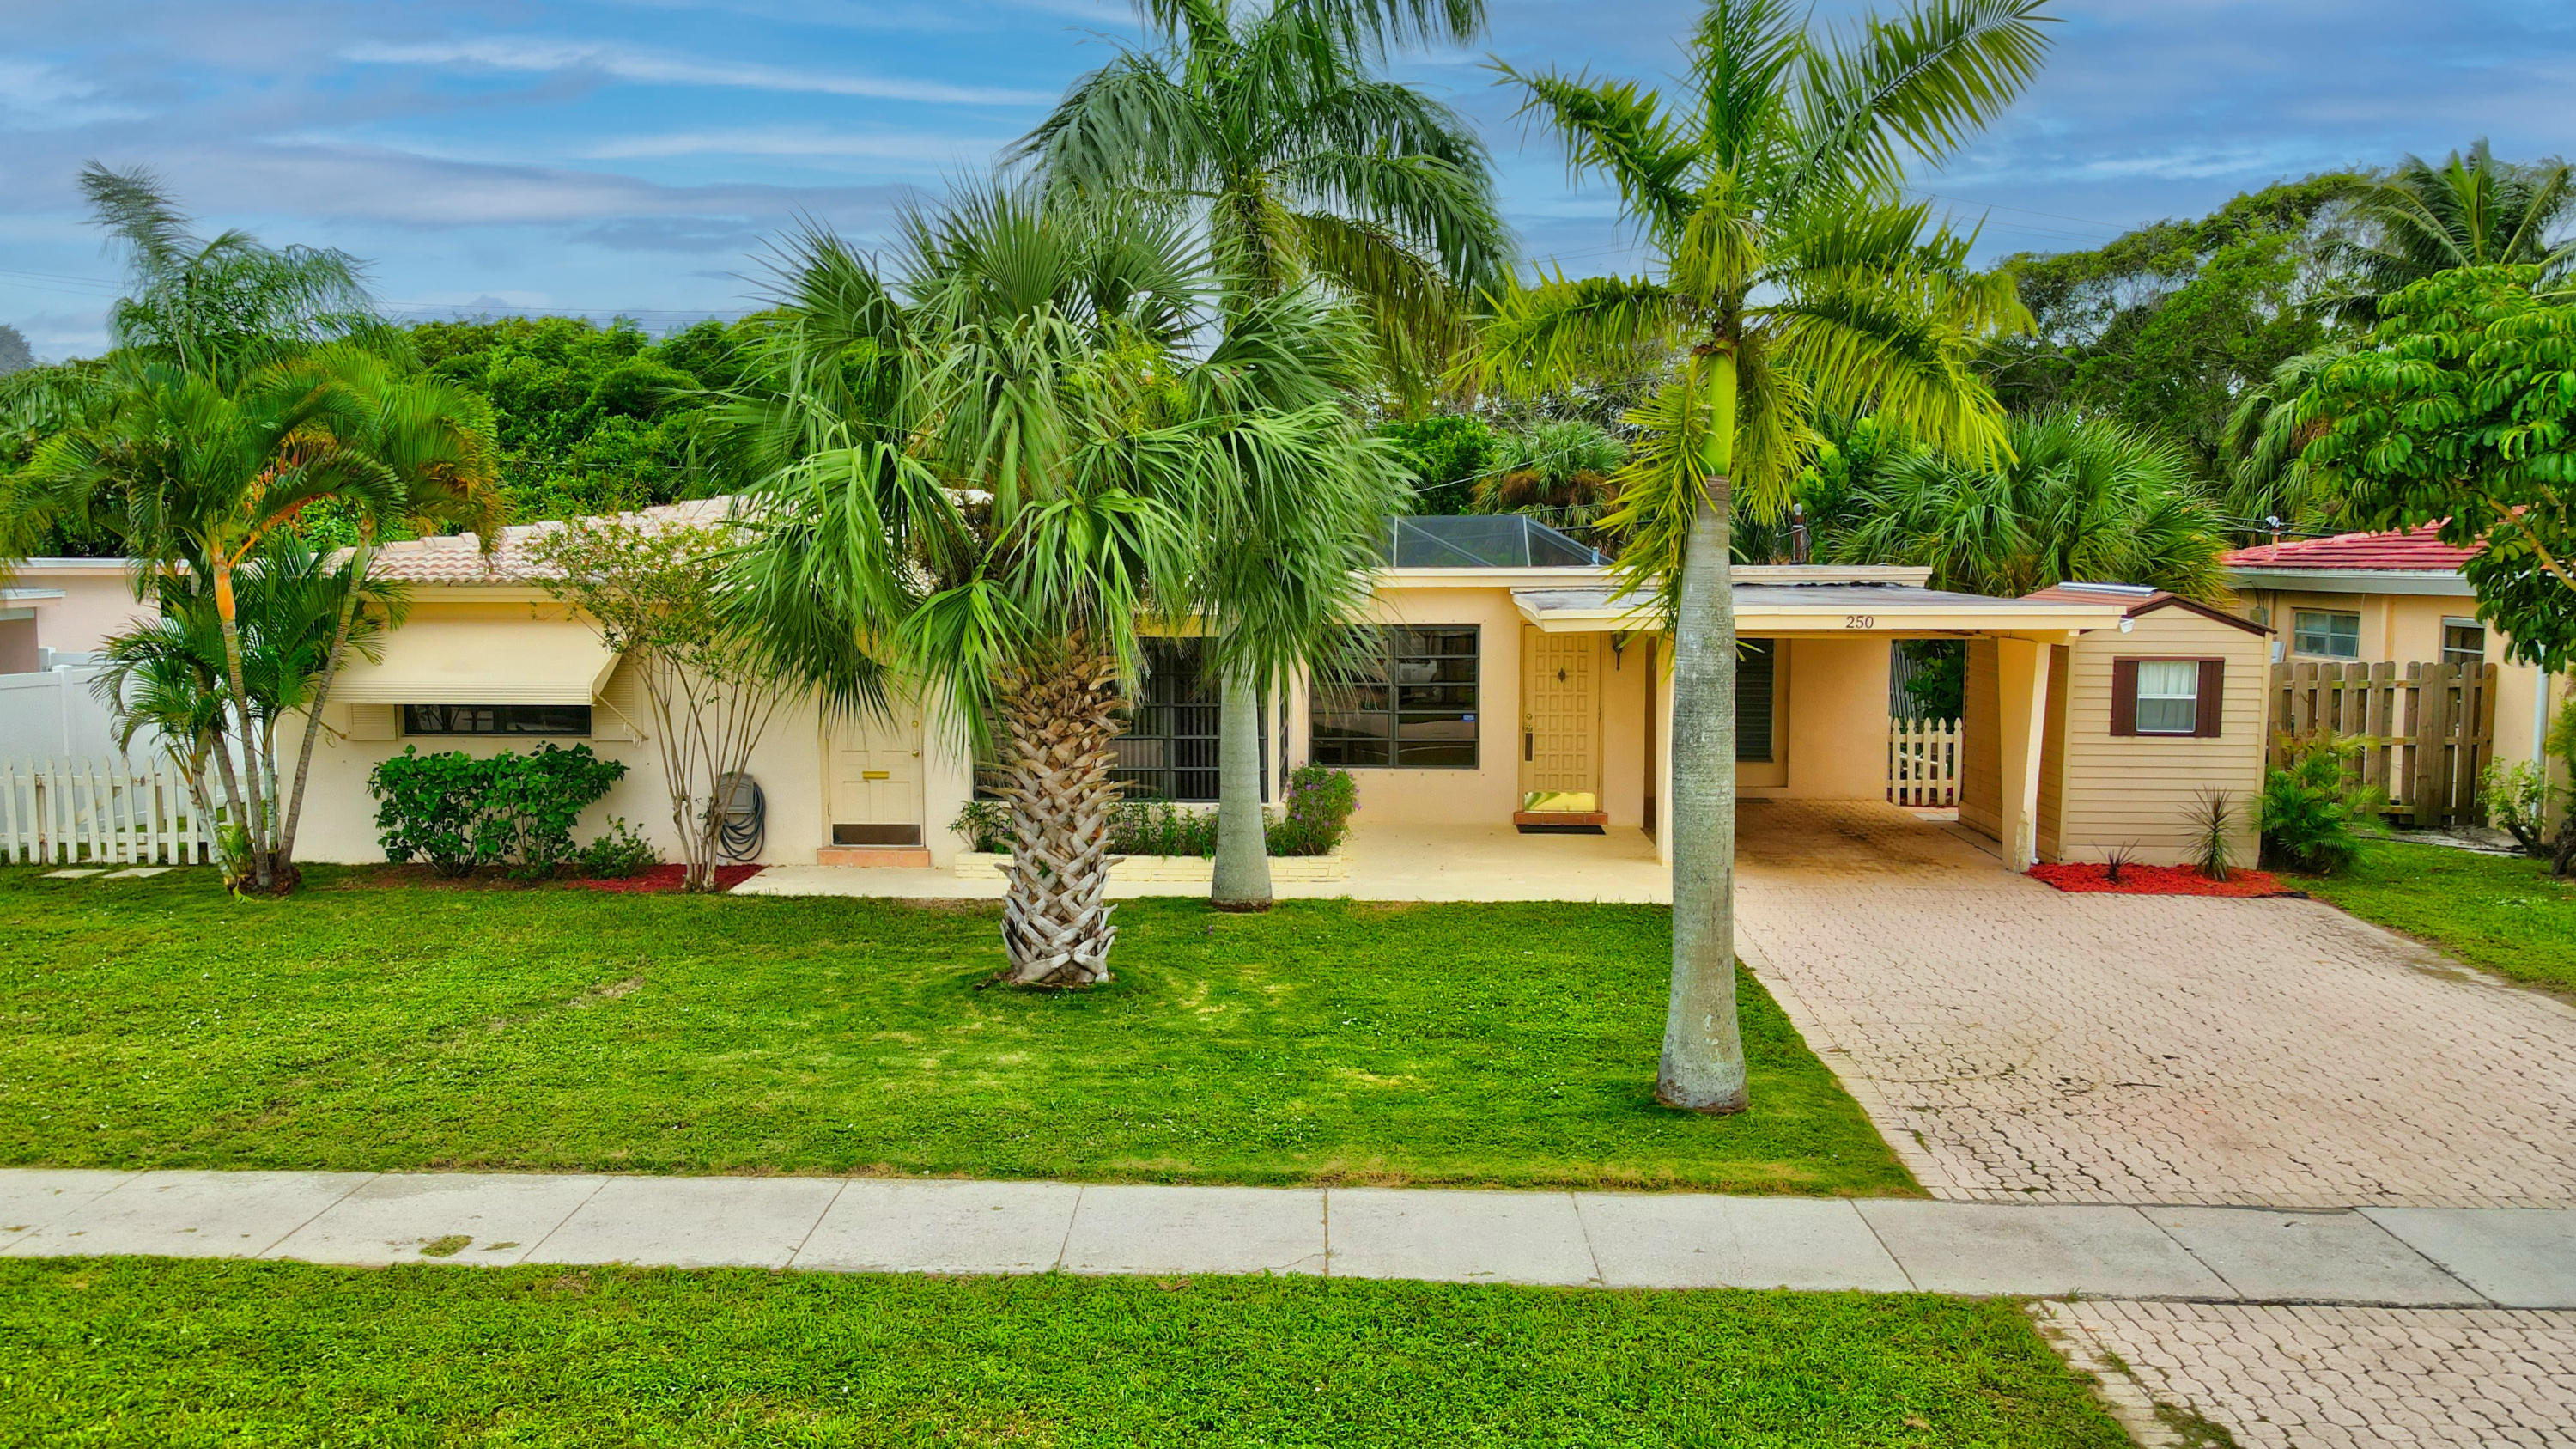 Home for sale in Winfield Park Boca Raton Florida